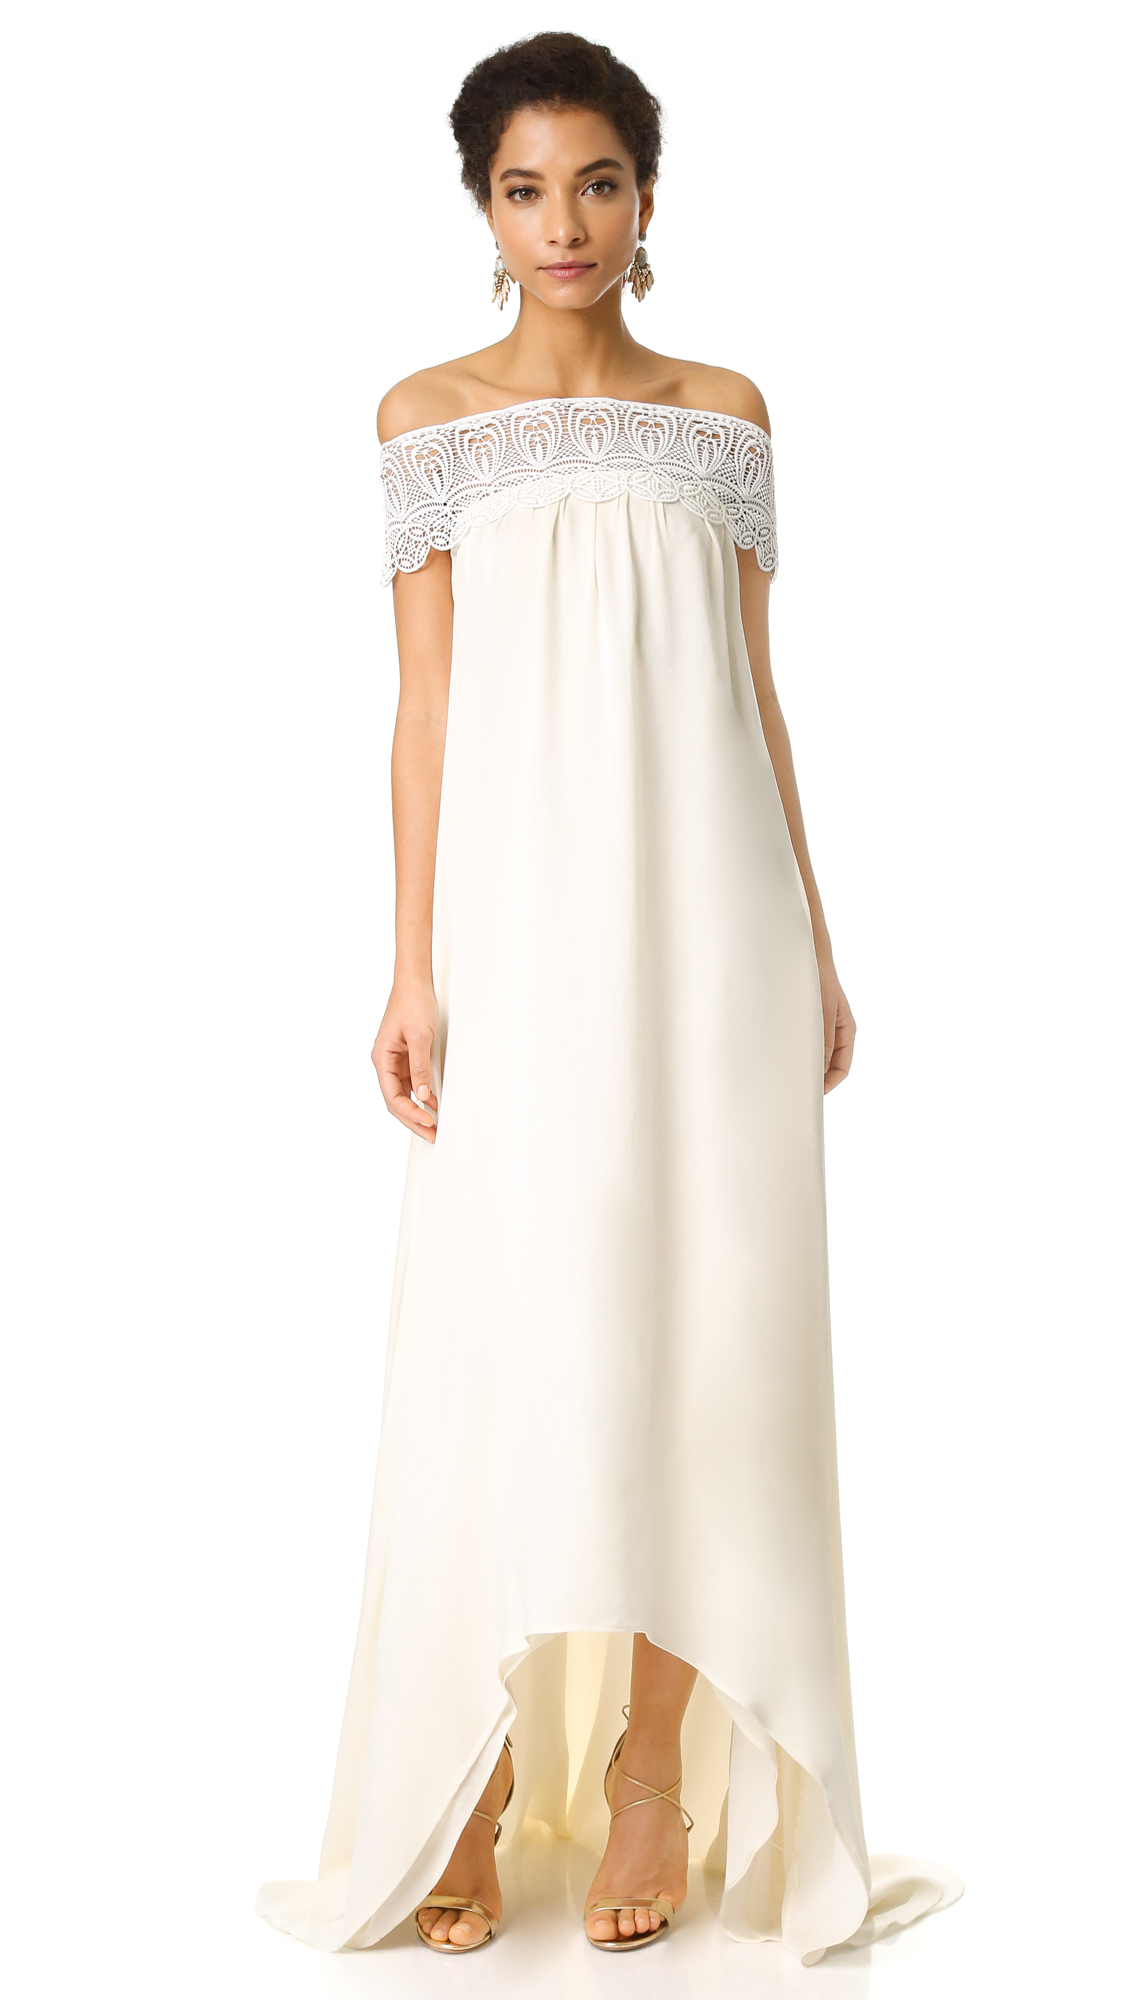 Self Portrait Off Shoulder Gown - Off White